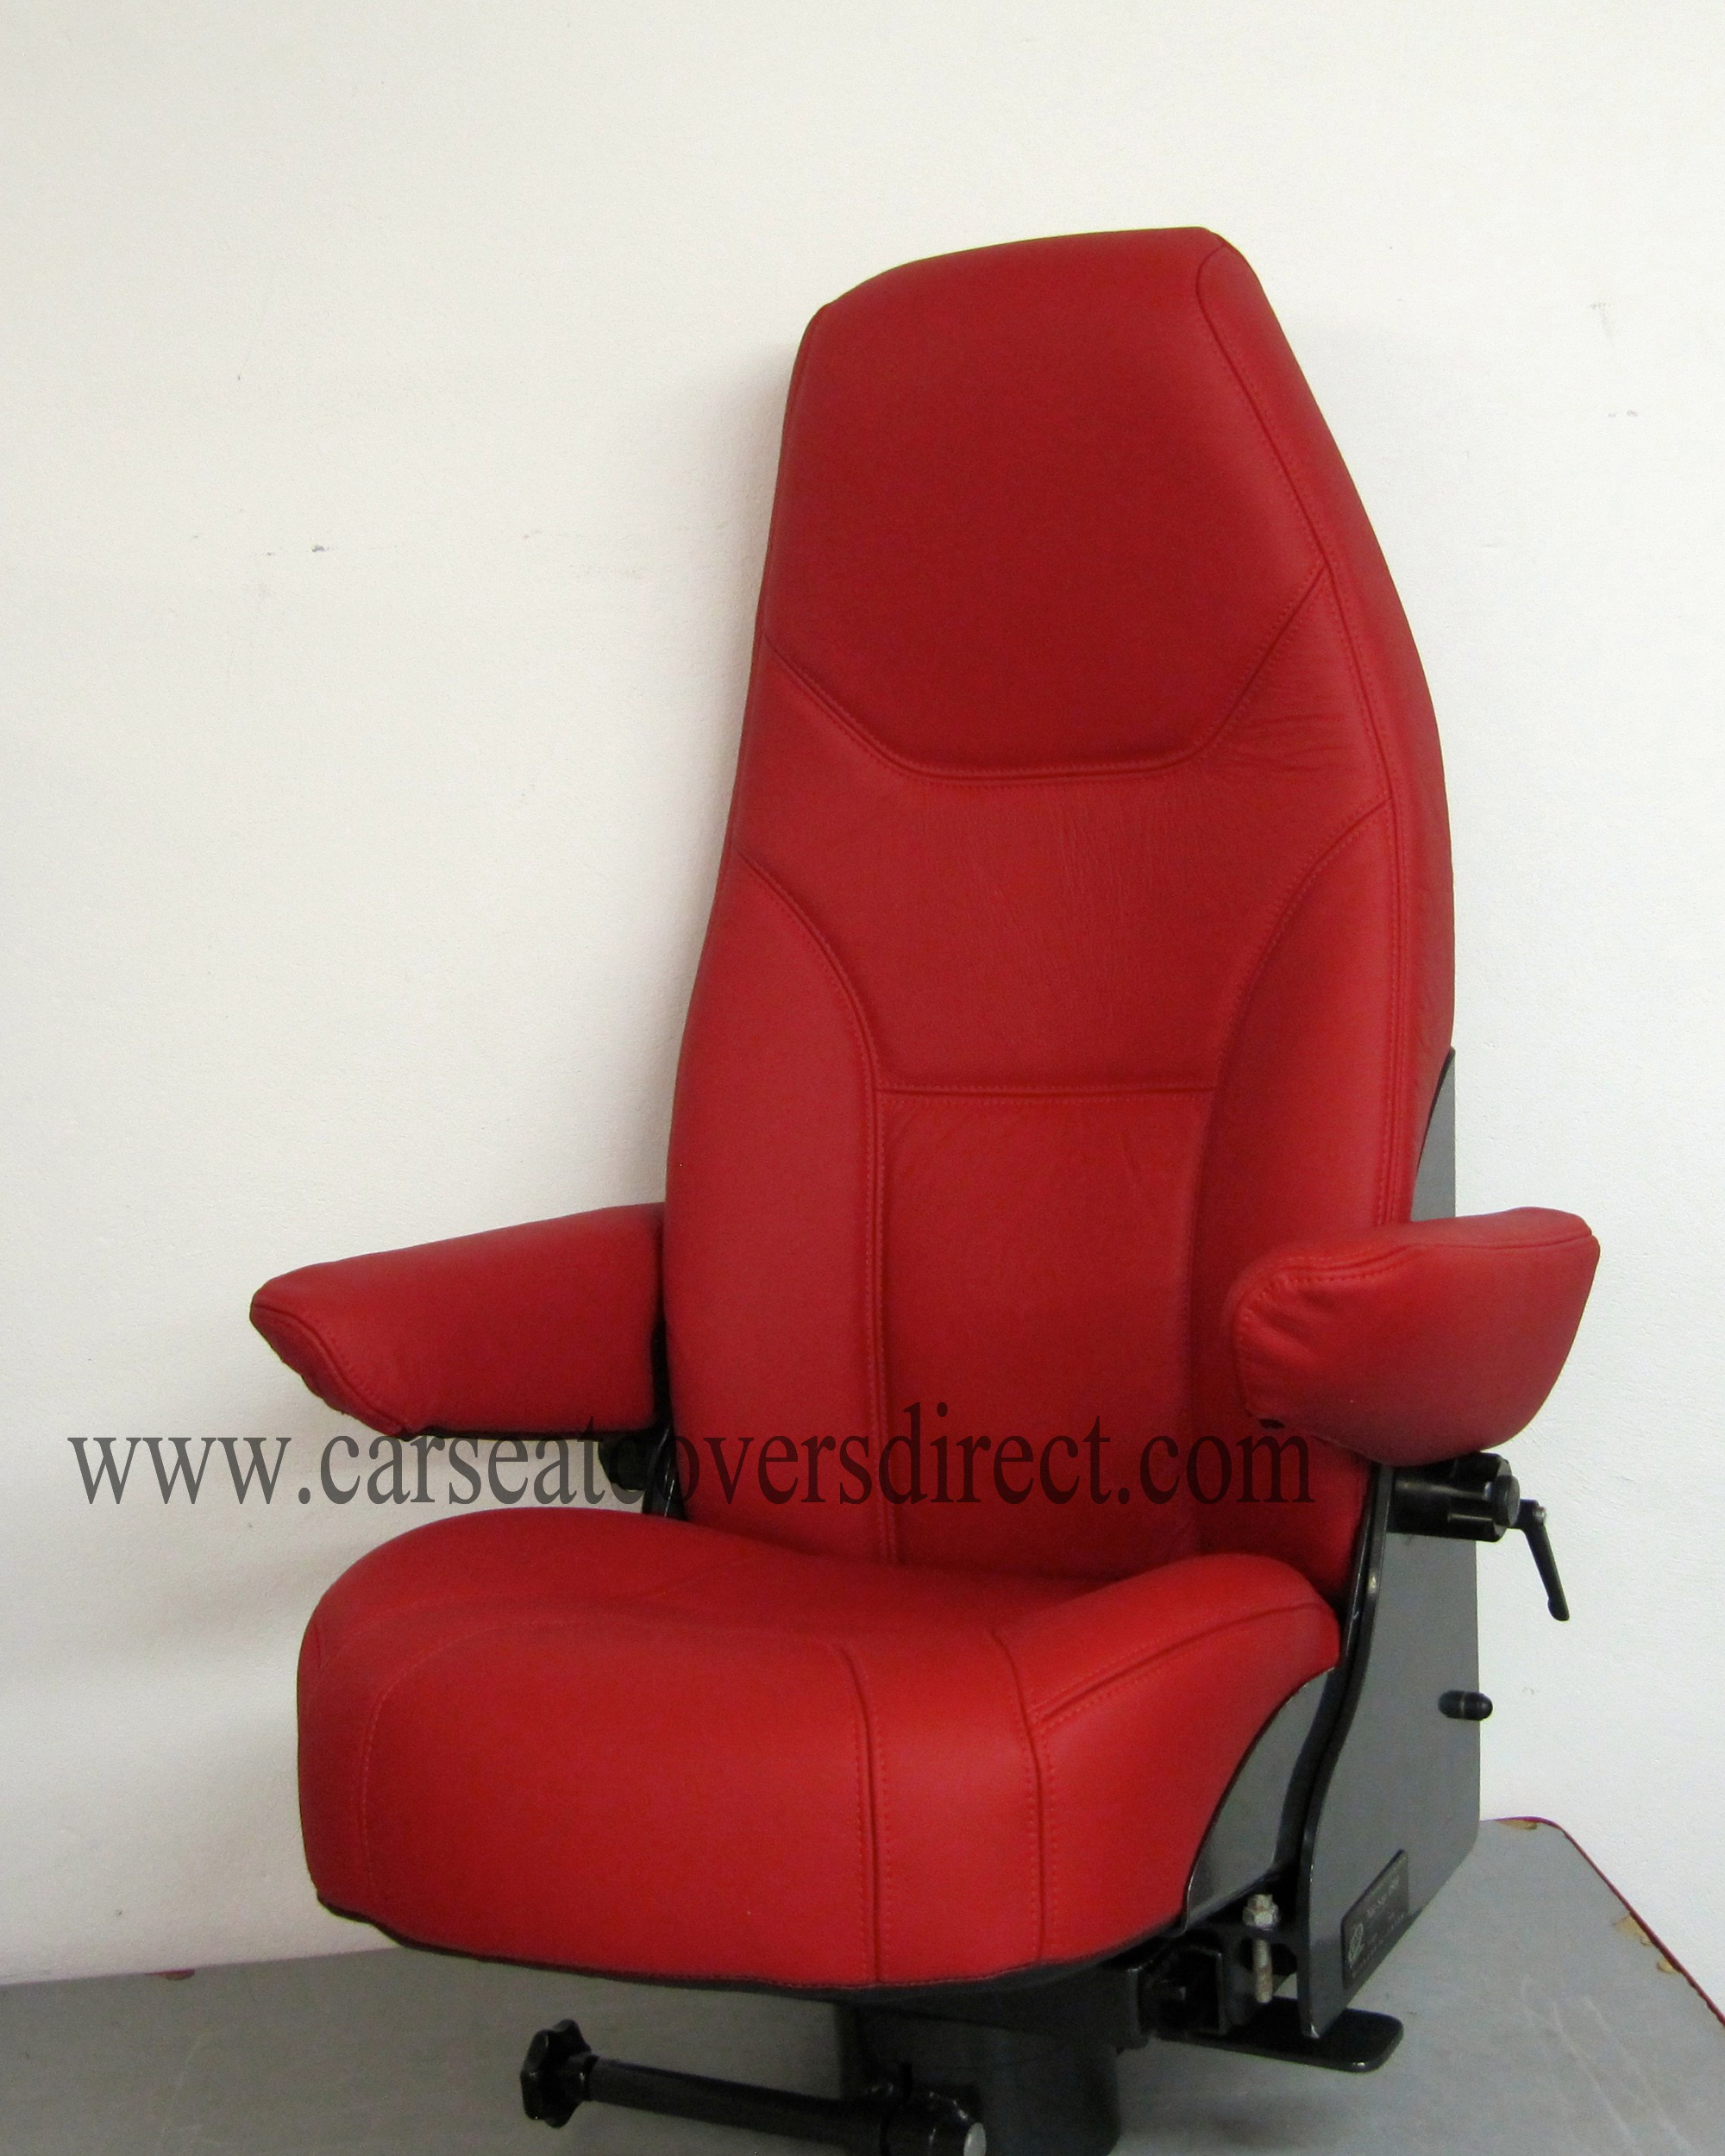 BOAT SEATS LEATHER RETRIM - Custom car seat covers - Custom